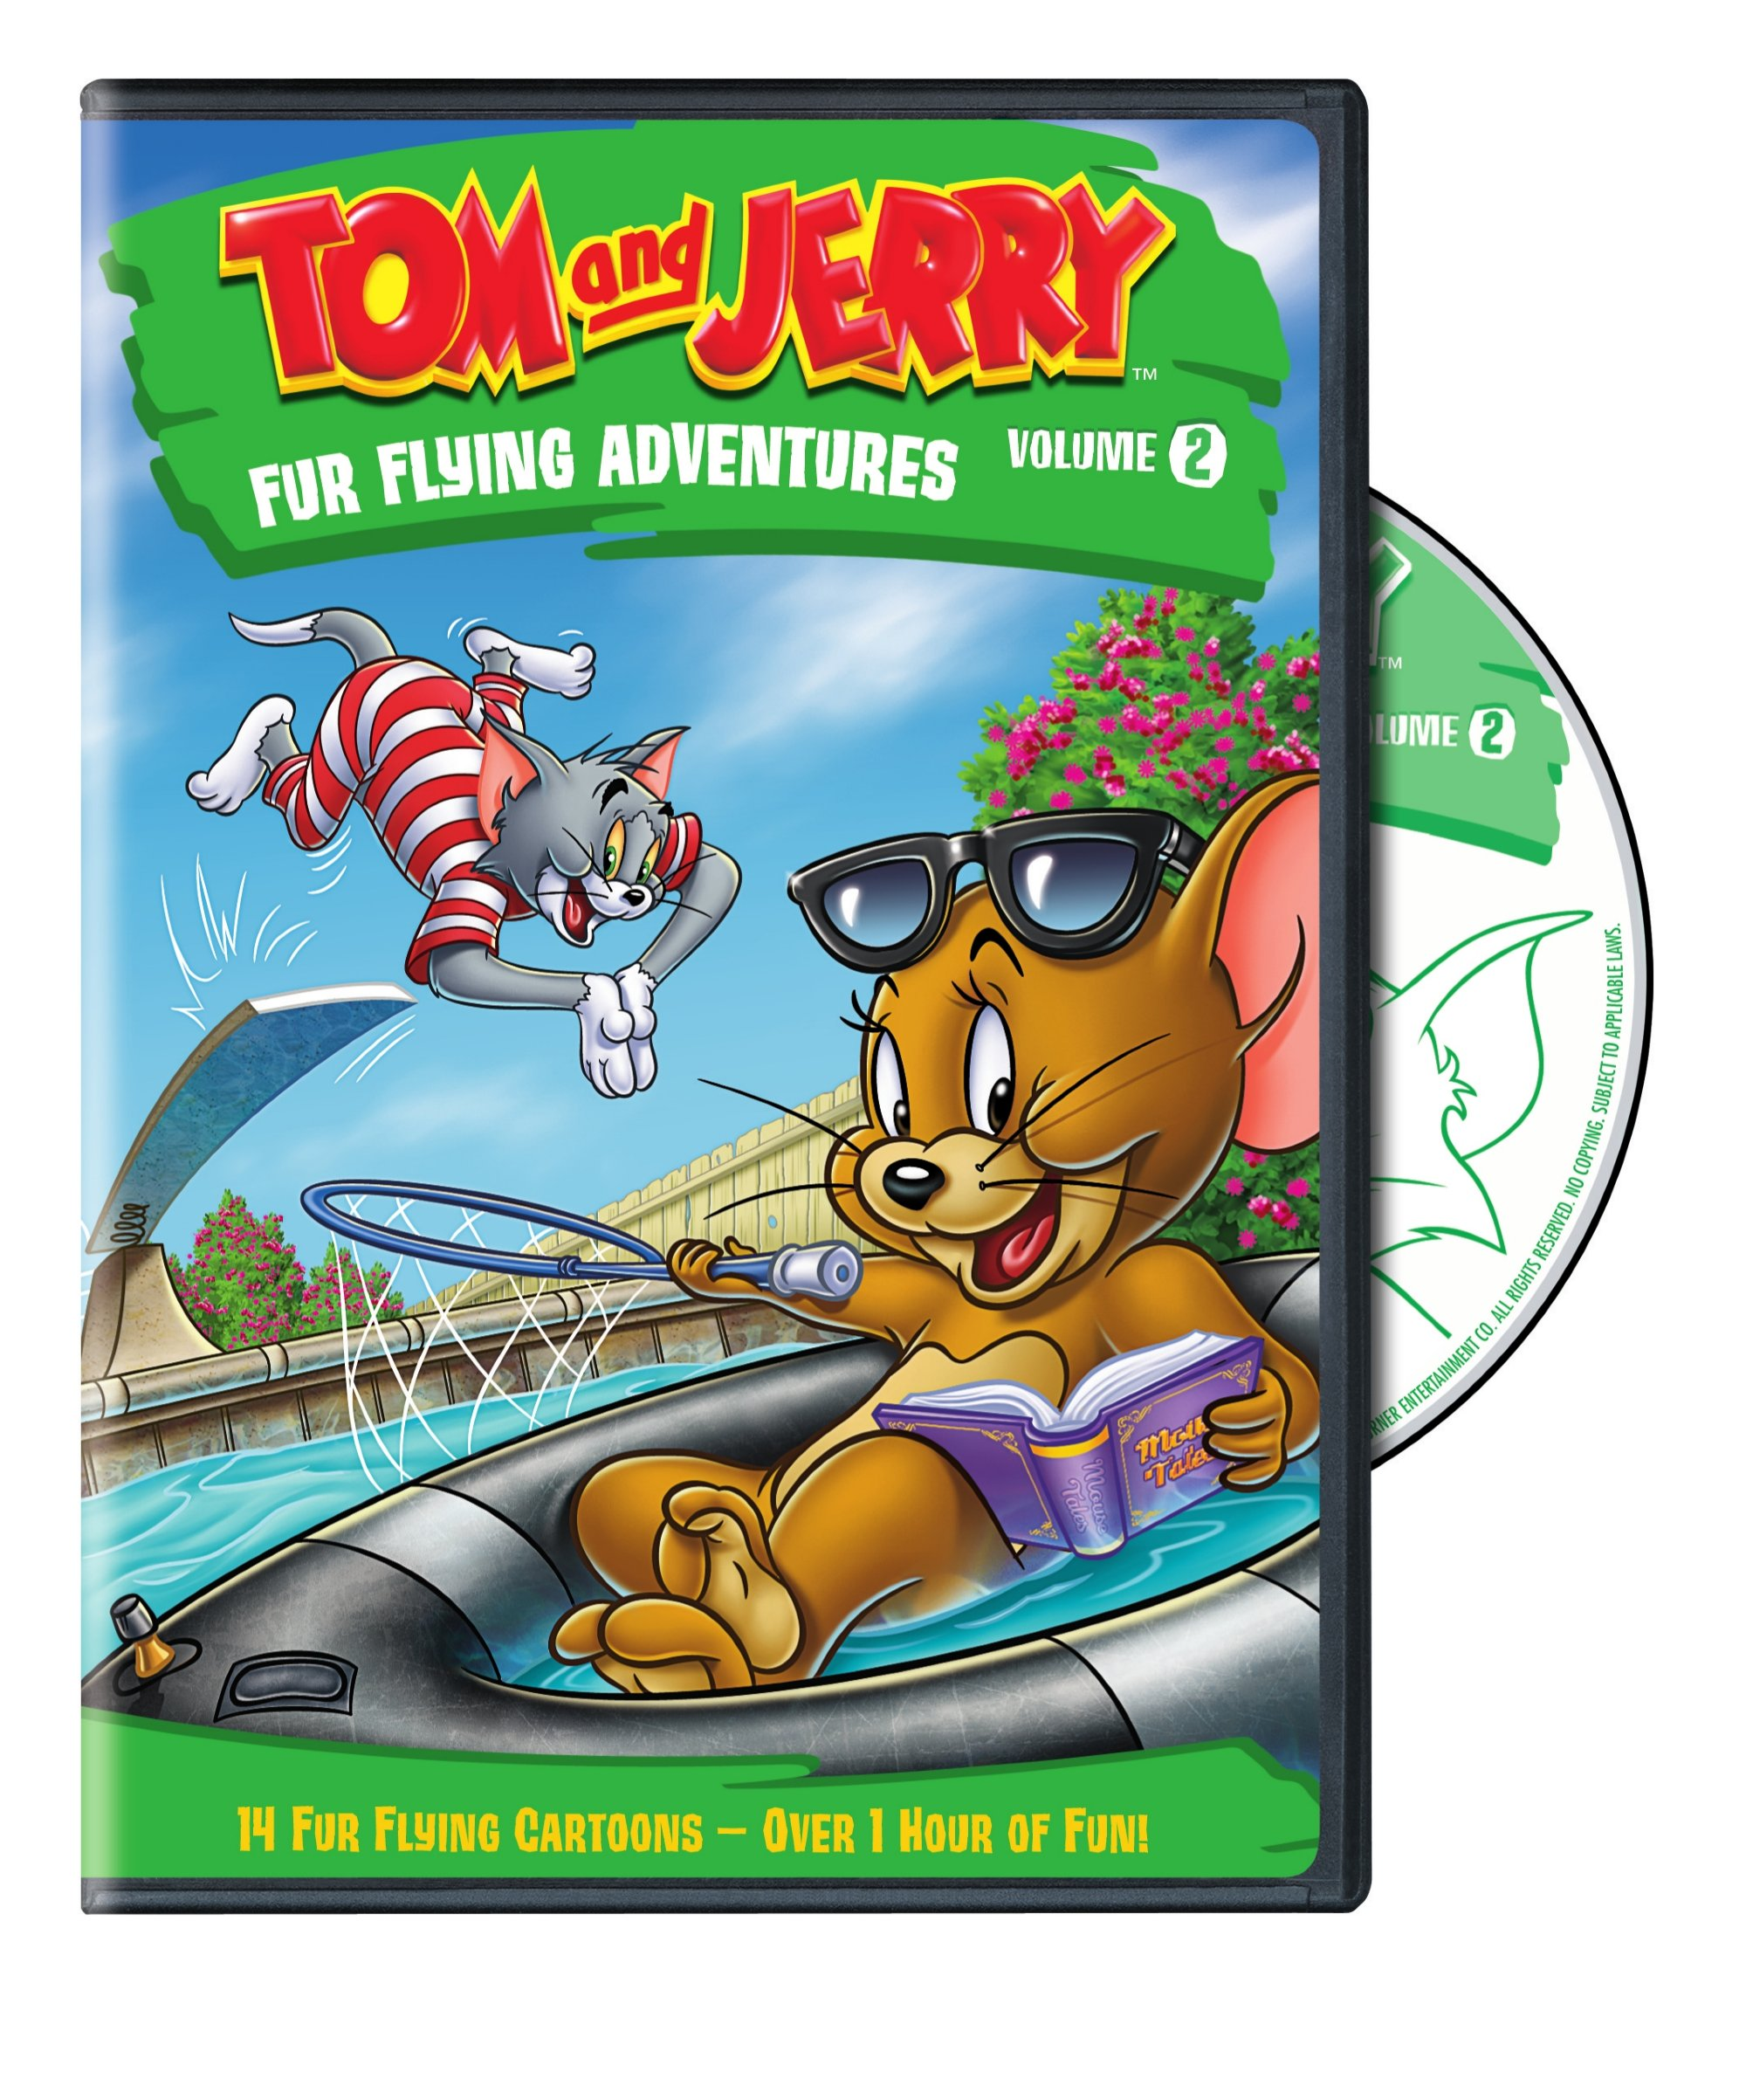 Tom and Jerry: Fur Flying Adventures Volume 2 (DVD)